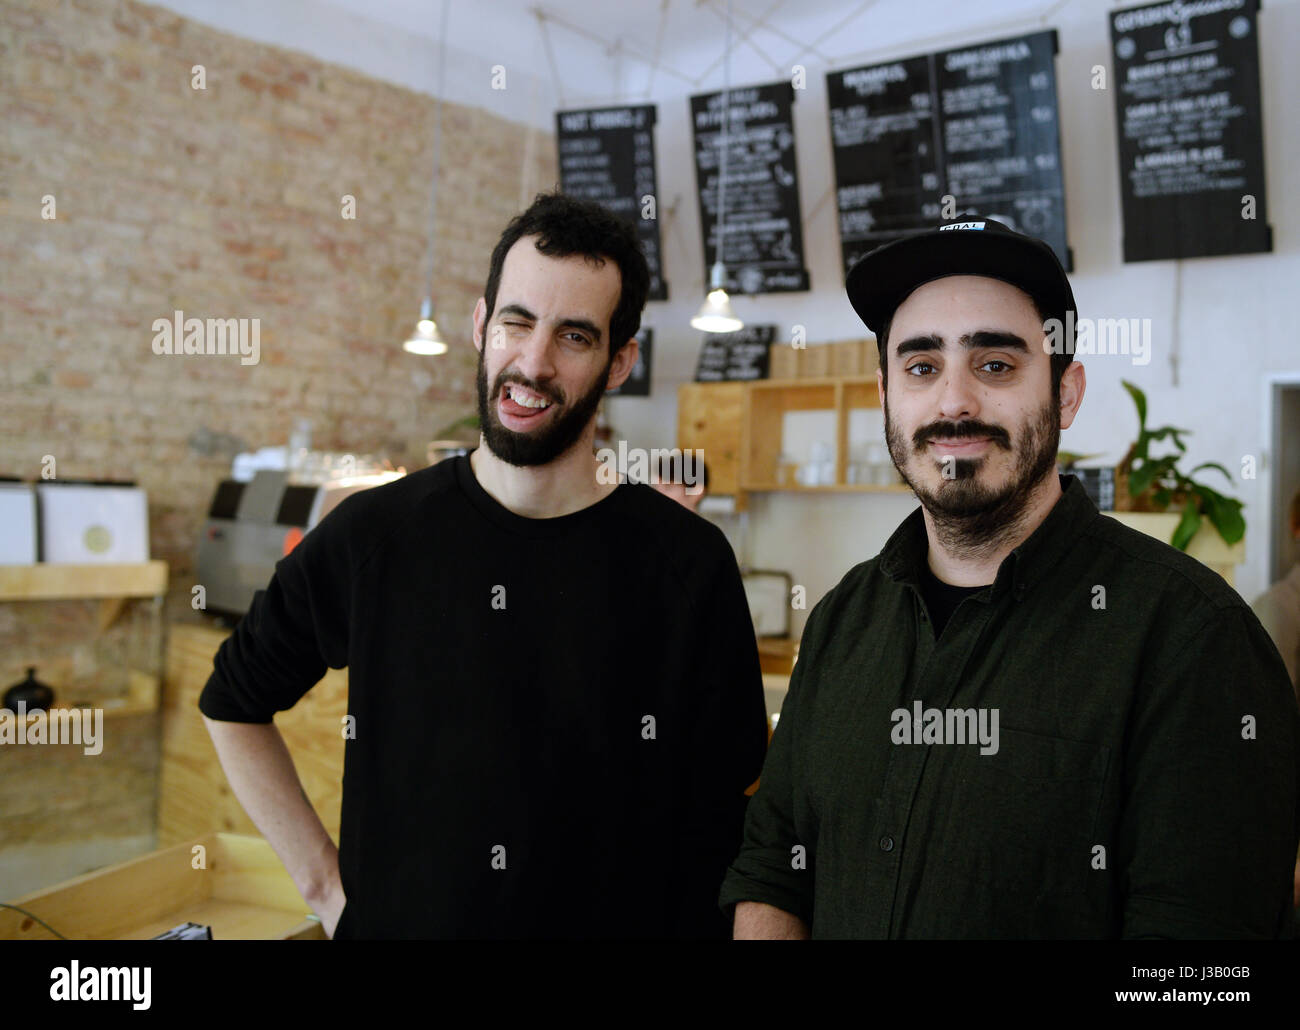 Neukoelln, Berlin, Germany. 3rd May, 2017. The owners and DJs Doron Eisenberg (L) and Nir Ivenizki stand in their - Stock Image